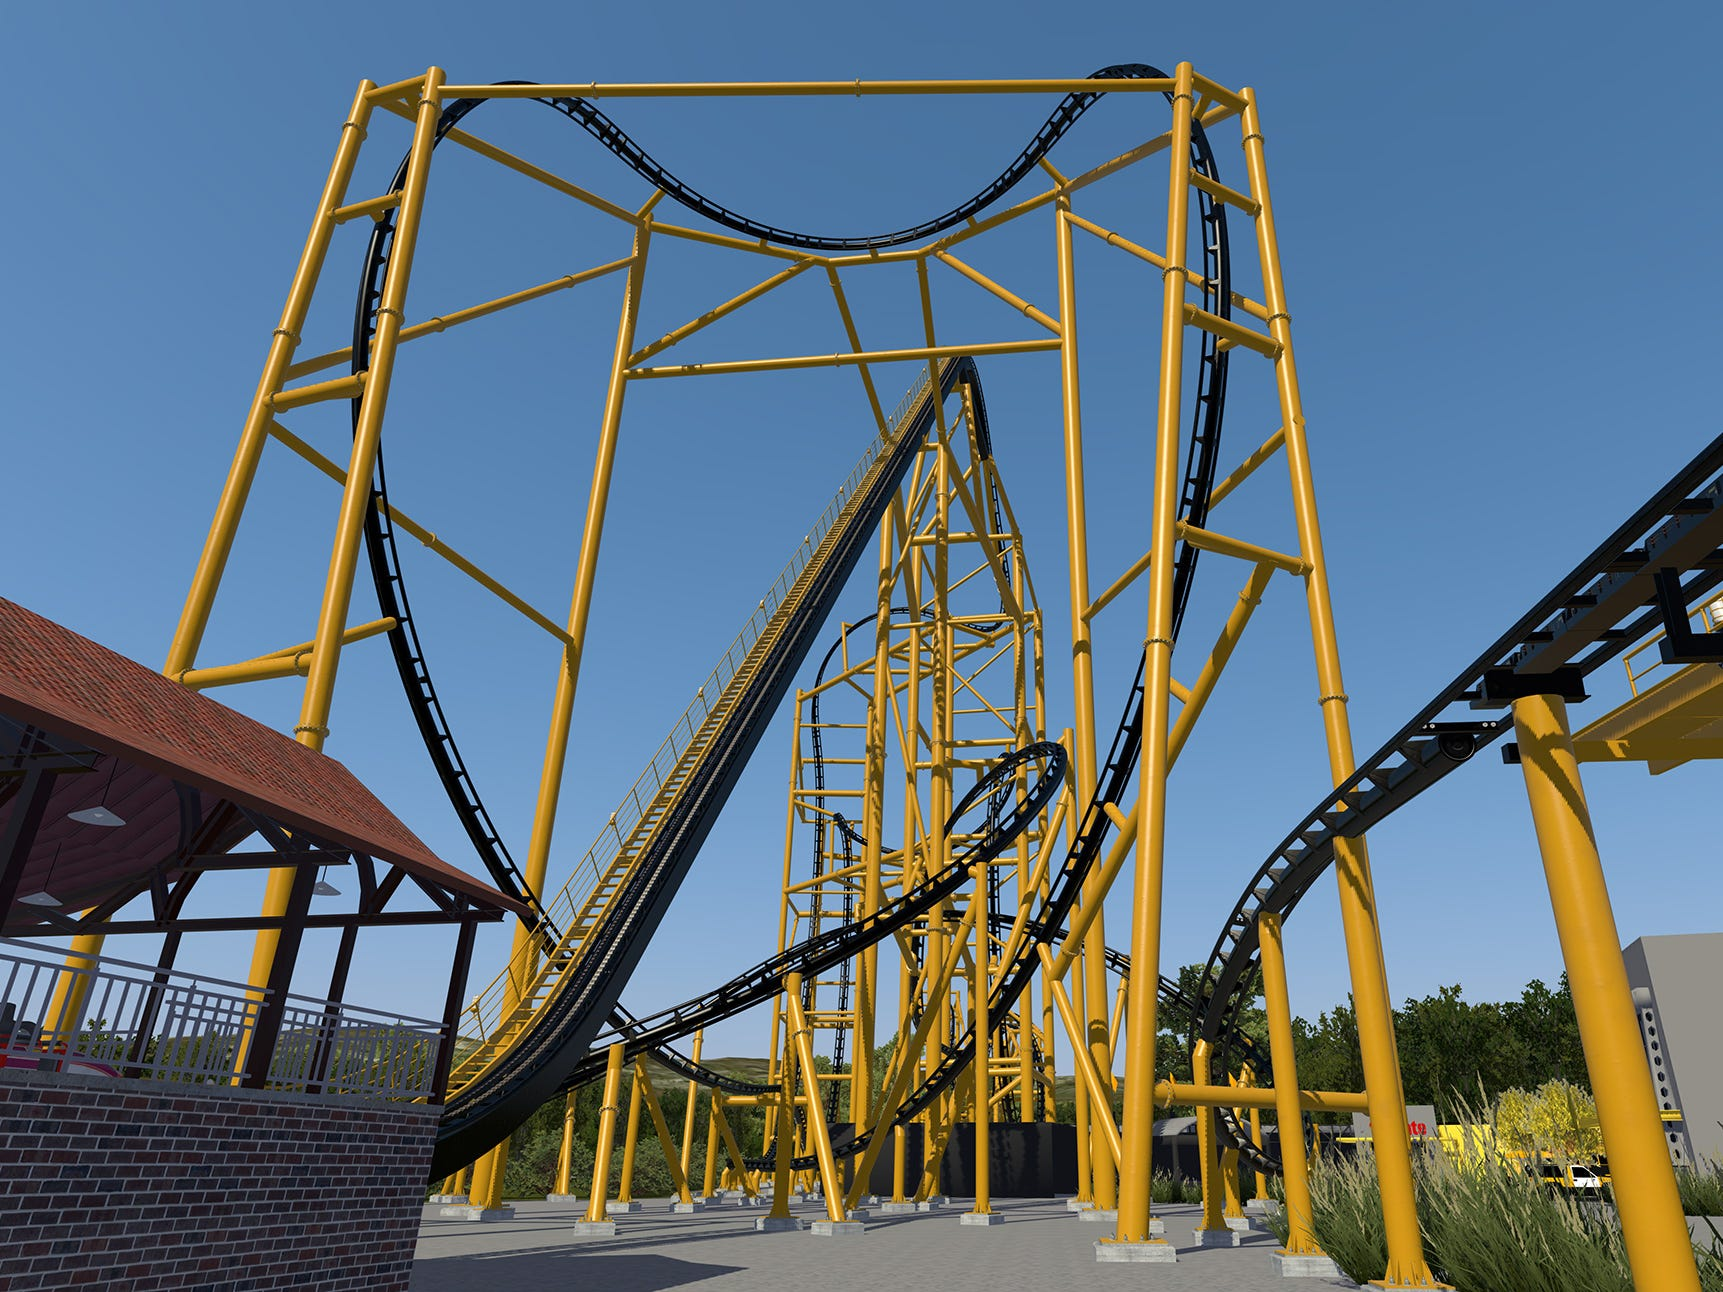 Steel Curtain will send passengers racing head over heels nine separate times. That's more than any other coaster in North America.